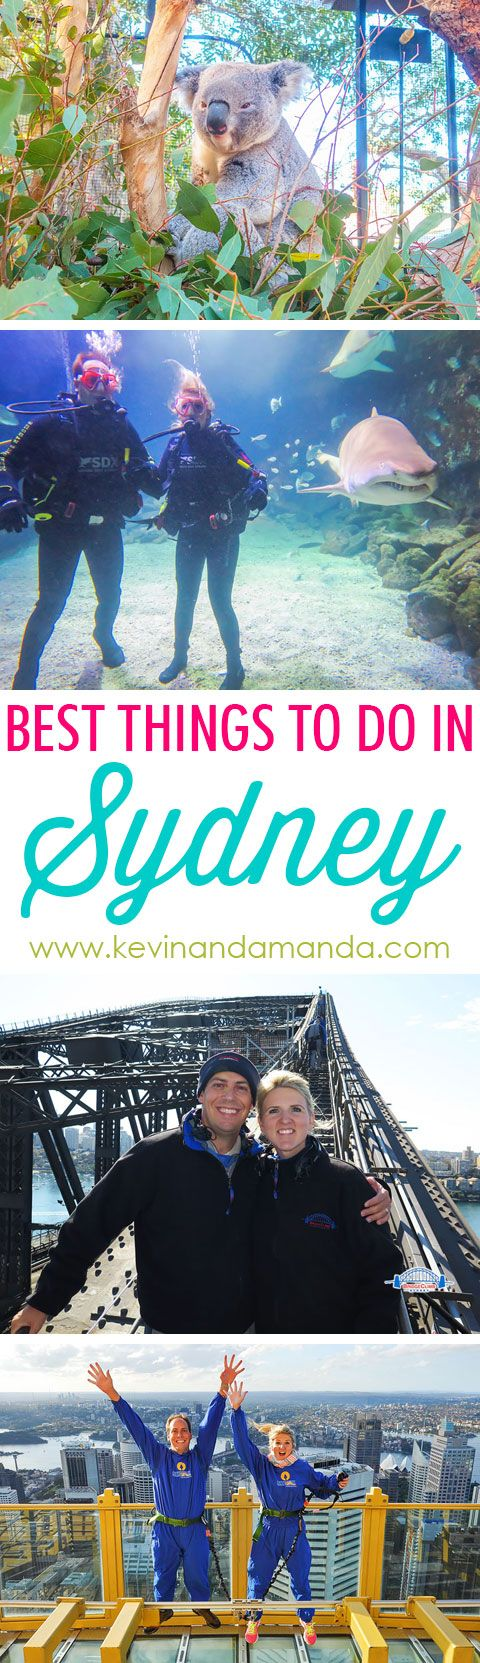 Best Things To Do in Sydney! Thinking about planning a trip down under? Here are the best things to do in Sydney, Australia.